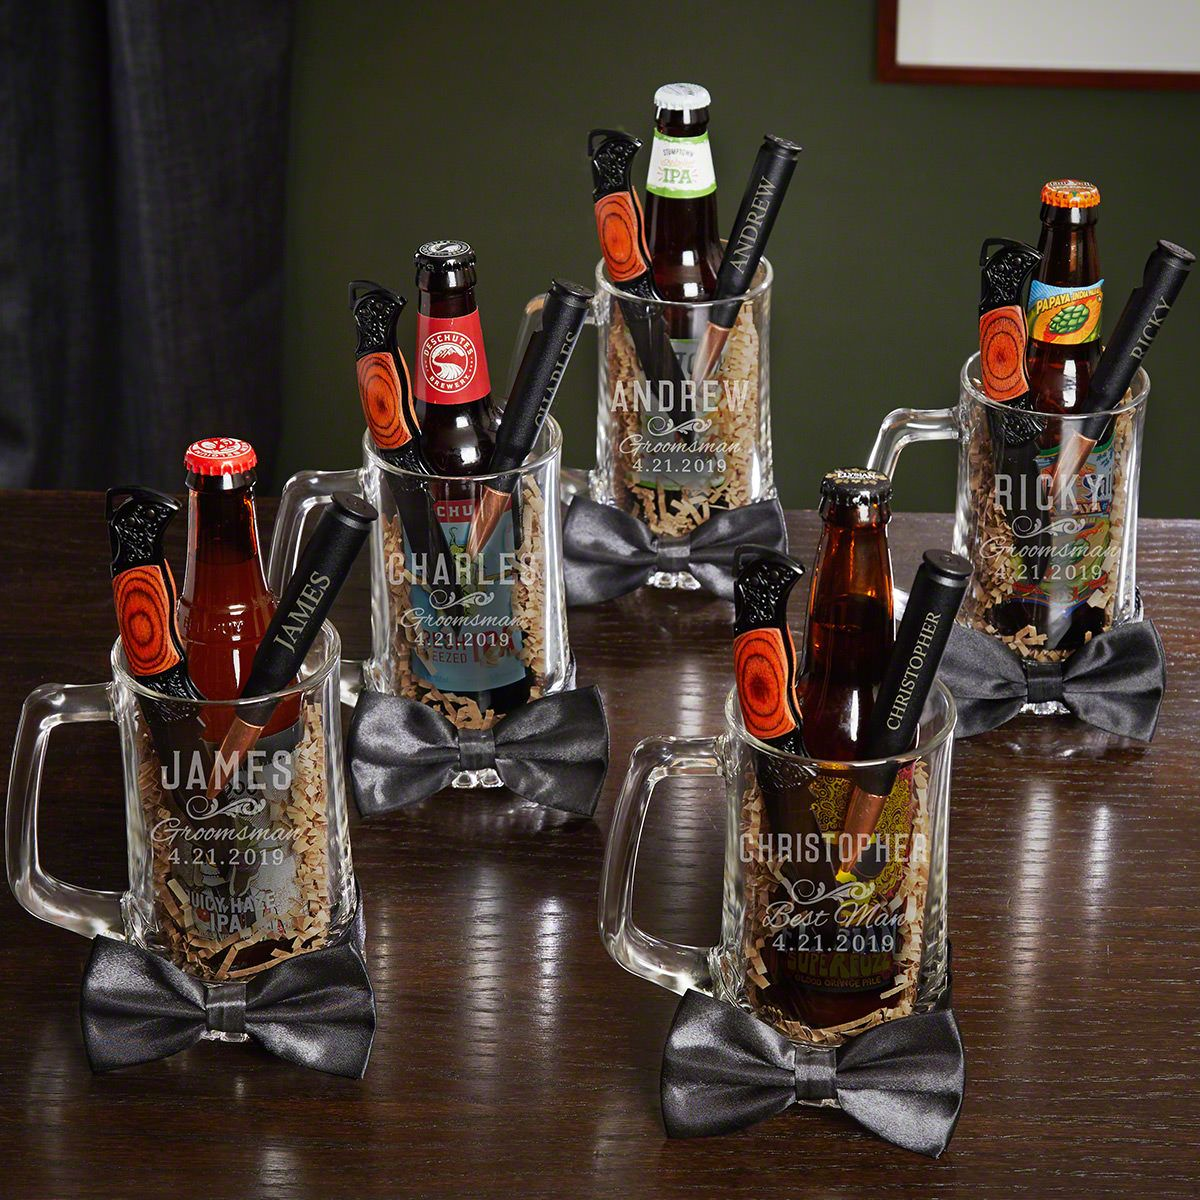 7460-classic-groomsman-beer-mug-gift-set-set-of-5.jpg & Classic Groomsman Personalized Beer Mugs u0026 Bottle Openers u2013 5 ...